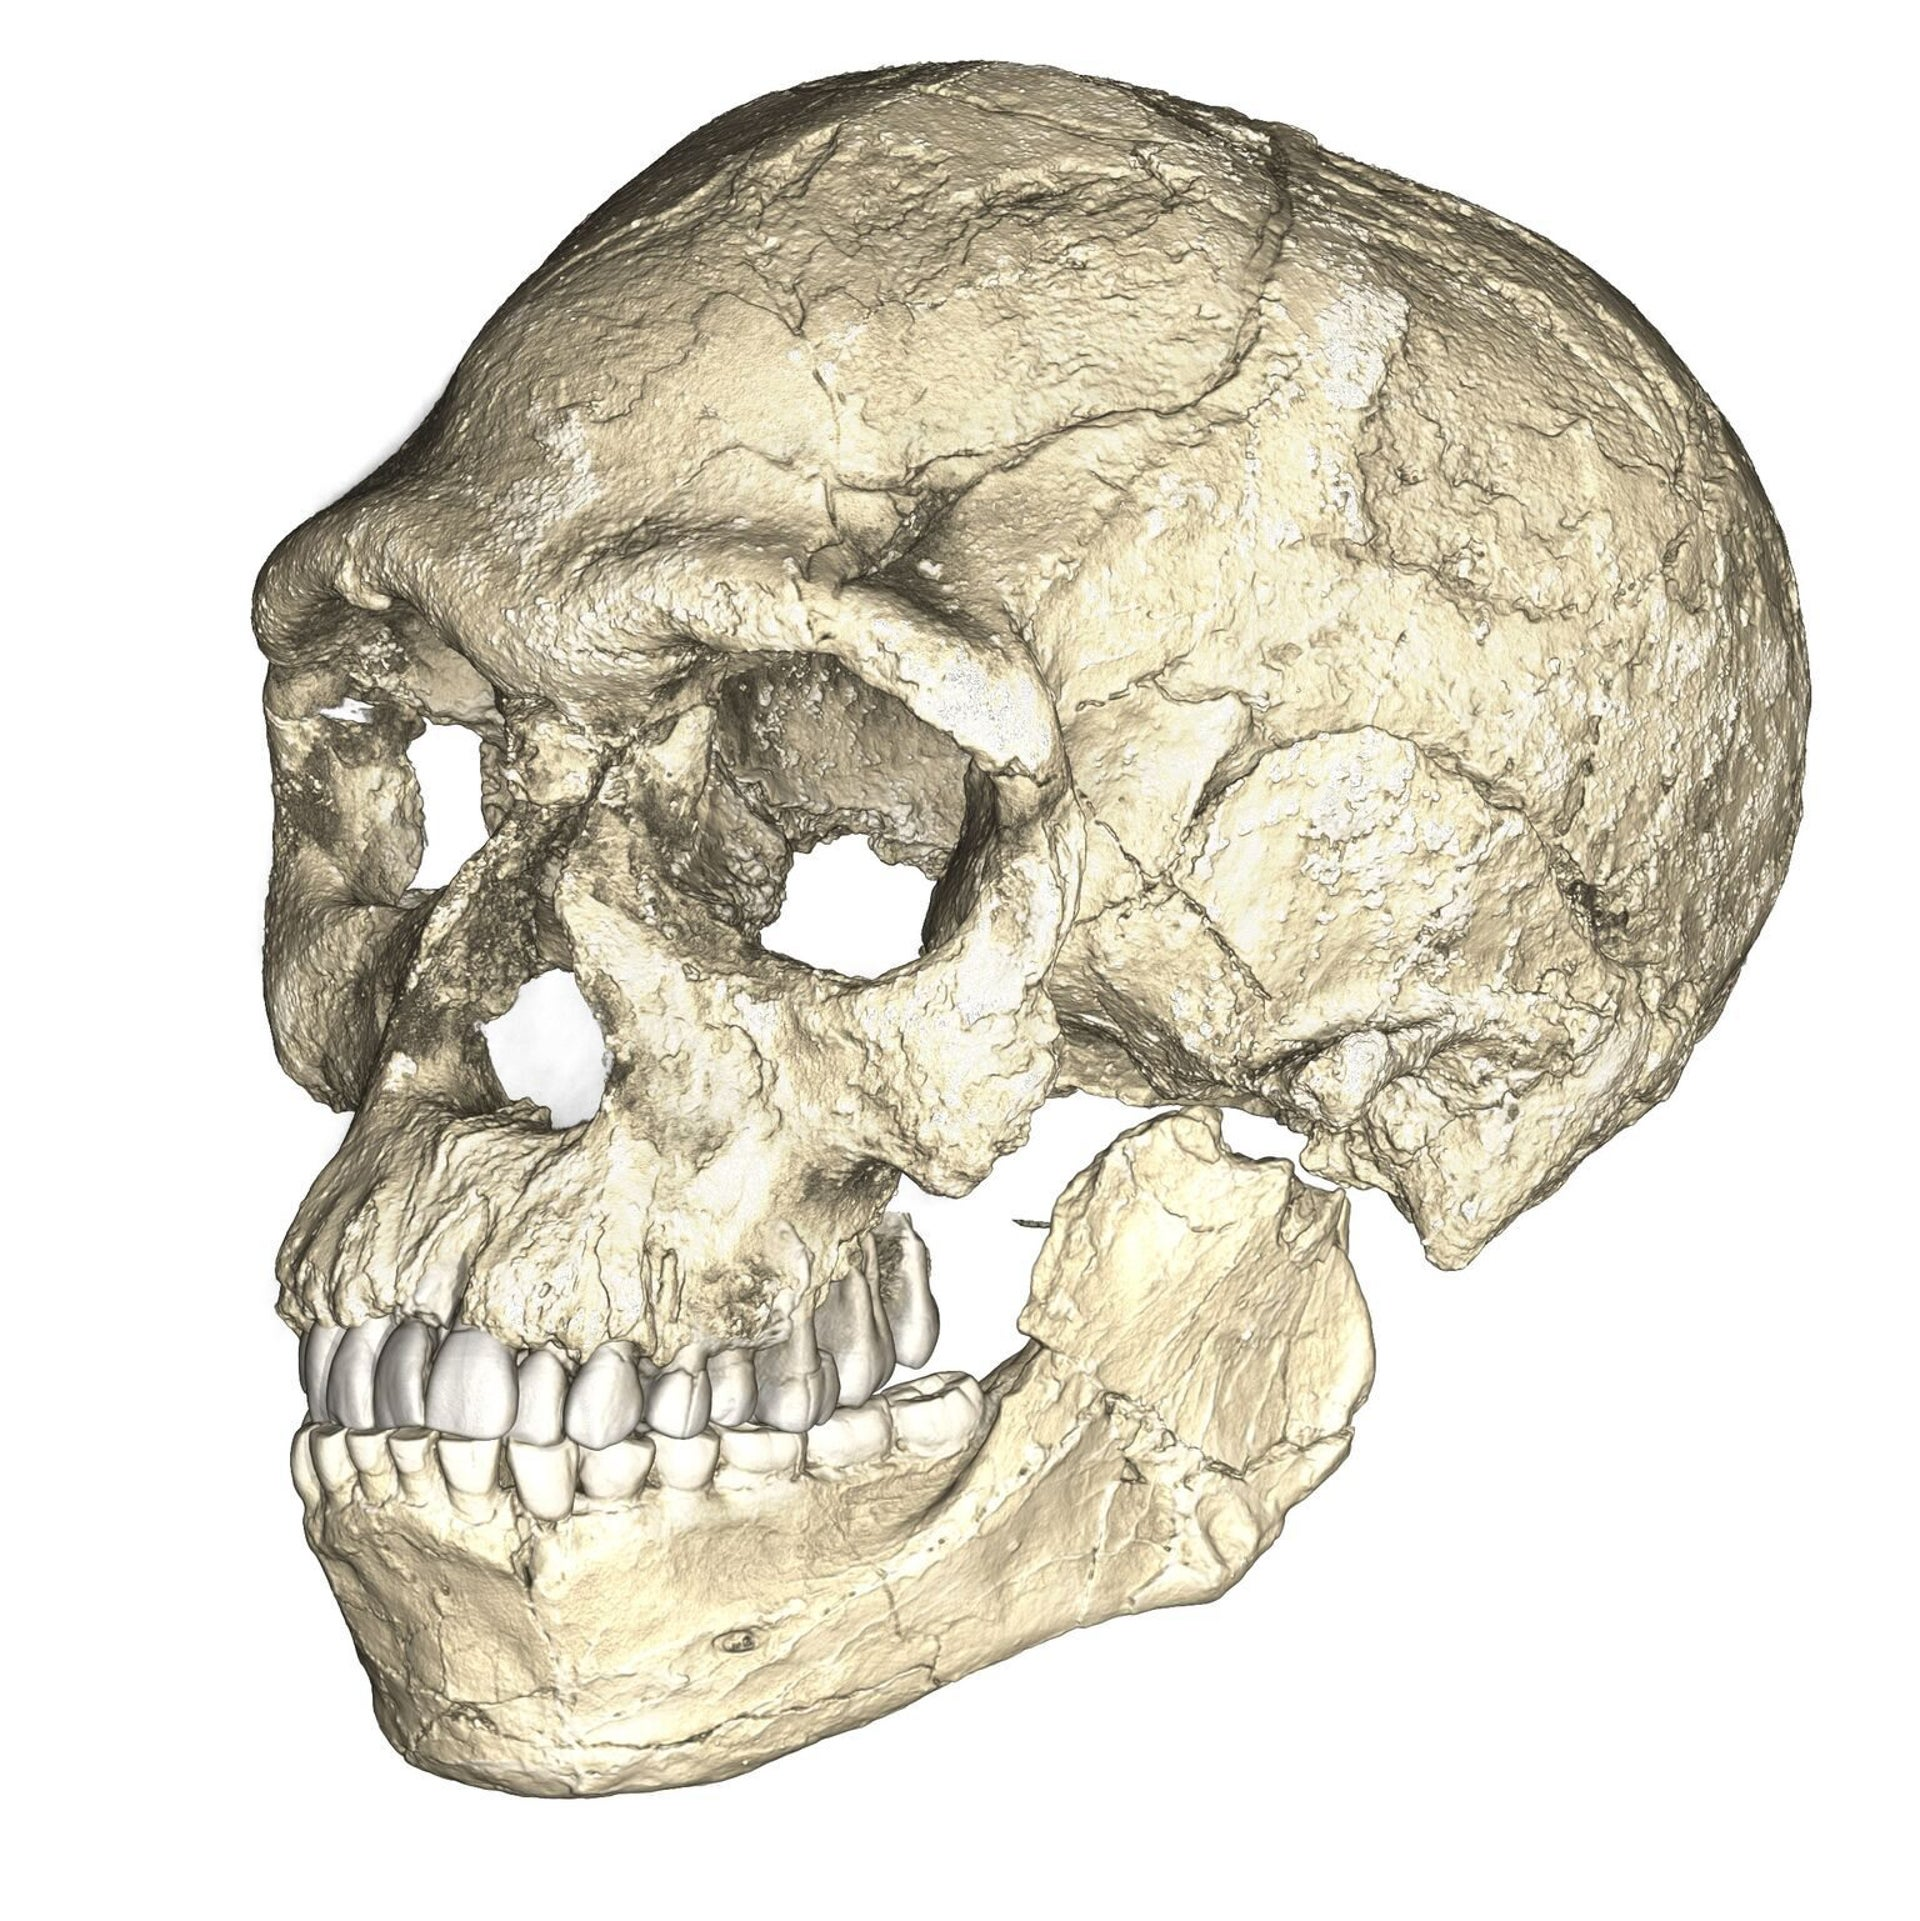 A composite reconstruction of the earliest known Homo sapiens fossils from Jebel Irhoud (Morocco) based on micro computed tomographic scans of multiple original fossils. Dated to 300,000 years ago these early Homo sapiens already have a modern-looking face that falls within the variation of humans living today. However, the archaic-looking braincase indicates that brain shape, and possibly brain function, evolved within the Homo sapiens lineage.